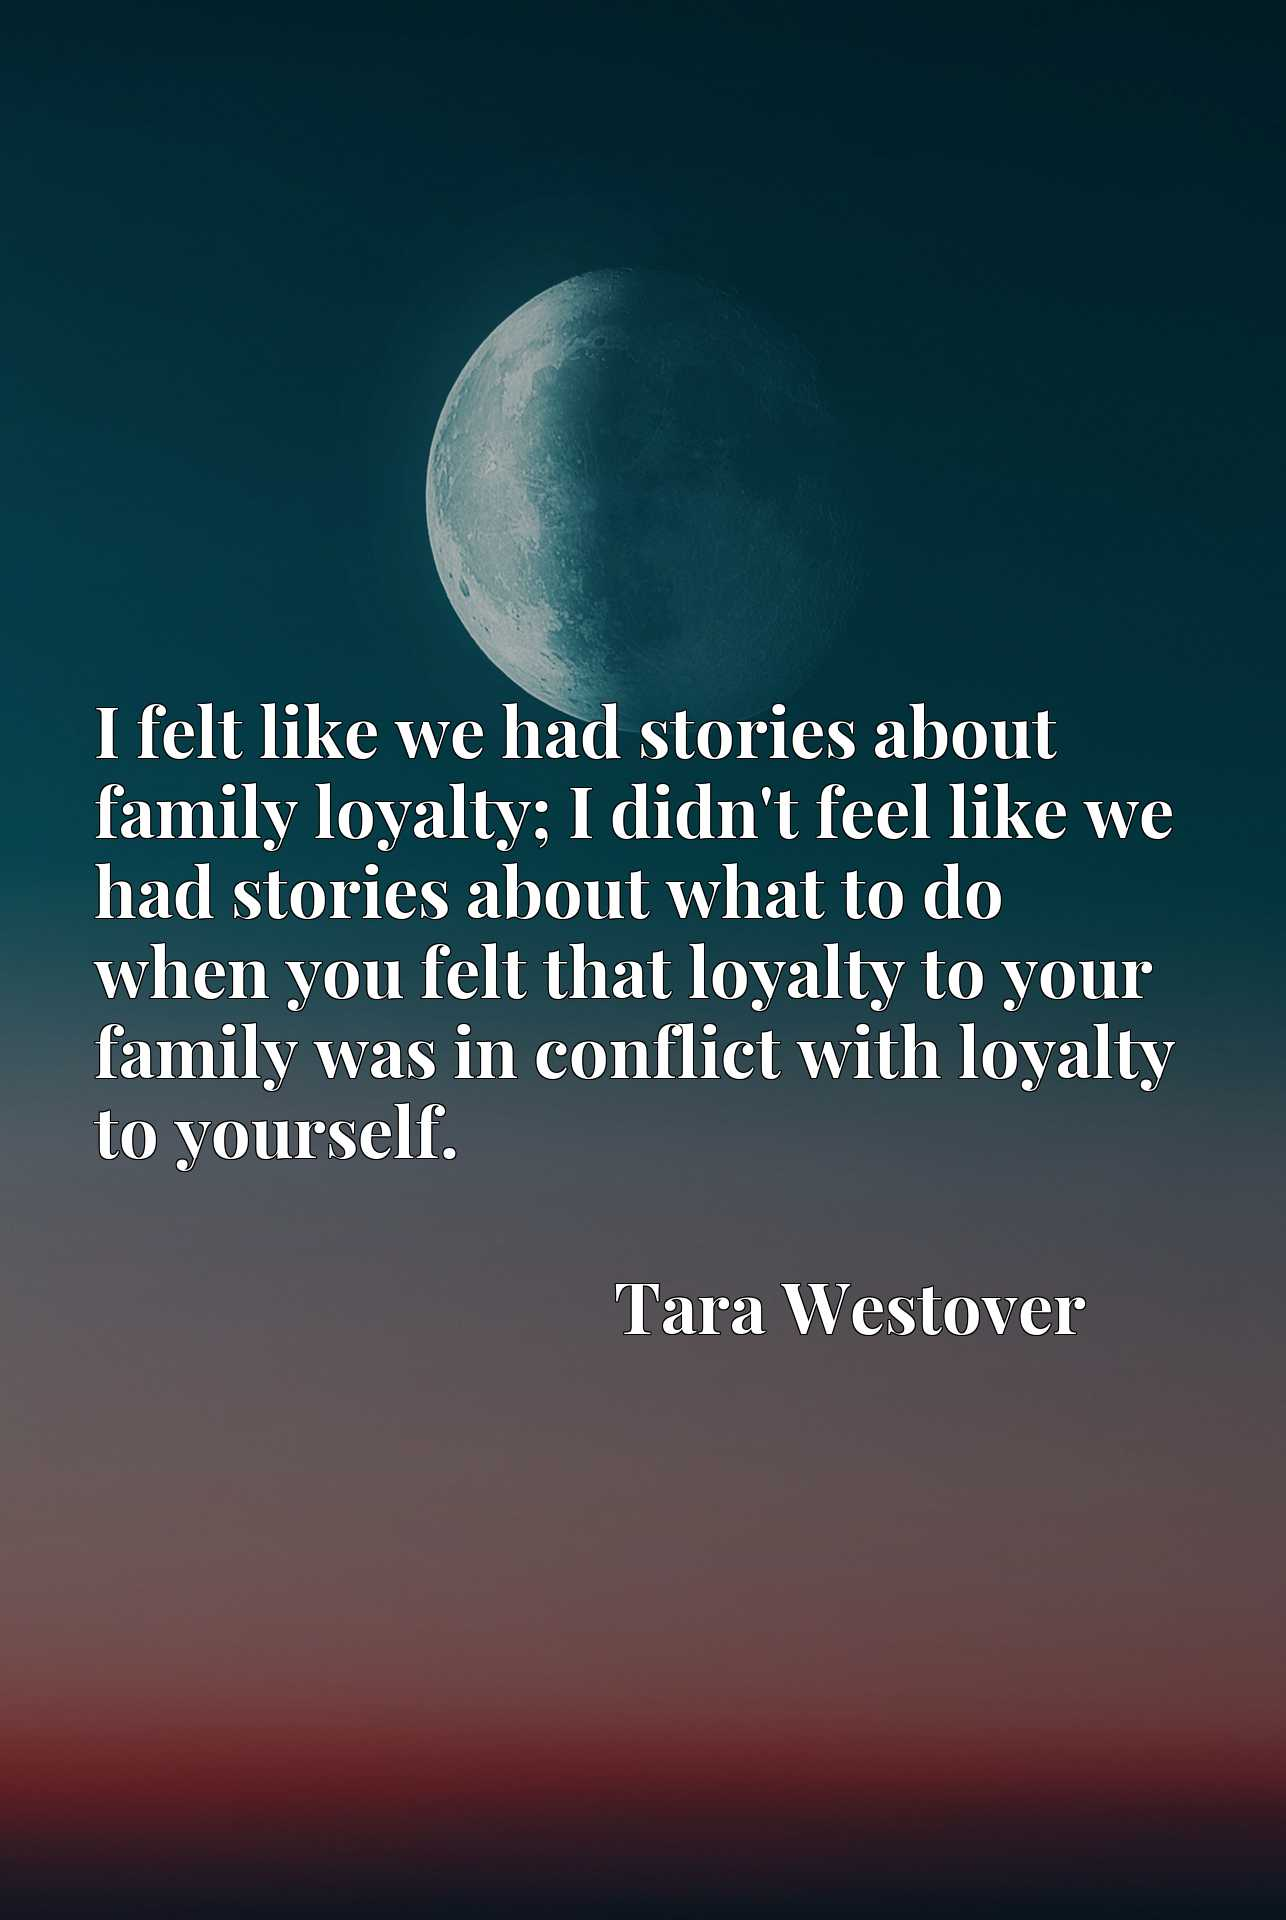 I felt like we had stories about family loyalty; I didn't feel like we had stories about what to do when you felt that loyalty to your family was in conflict with loyalty to yourself.